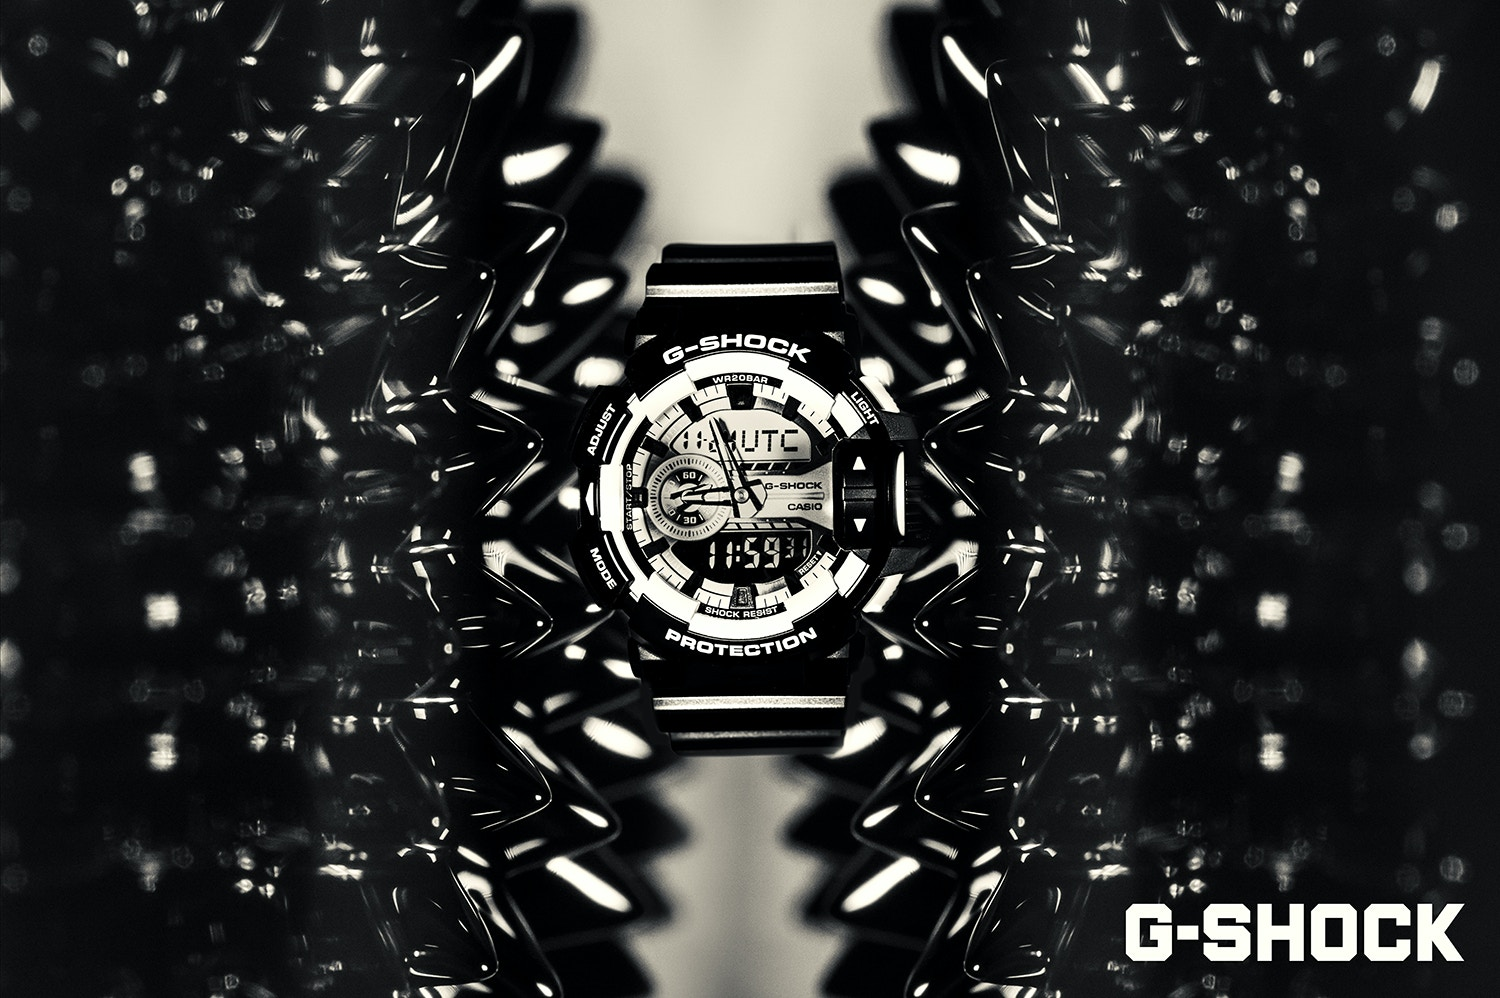 G-Shock Advertising Campaign